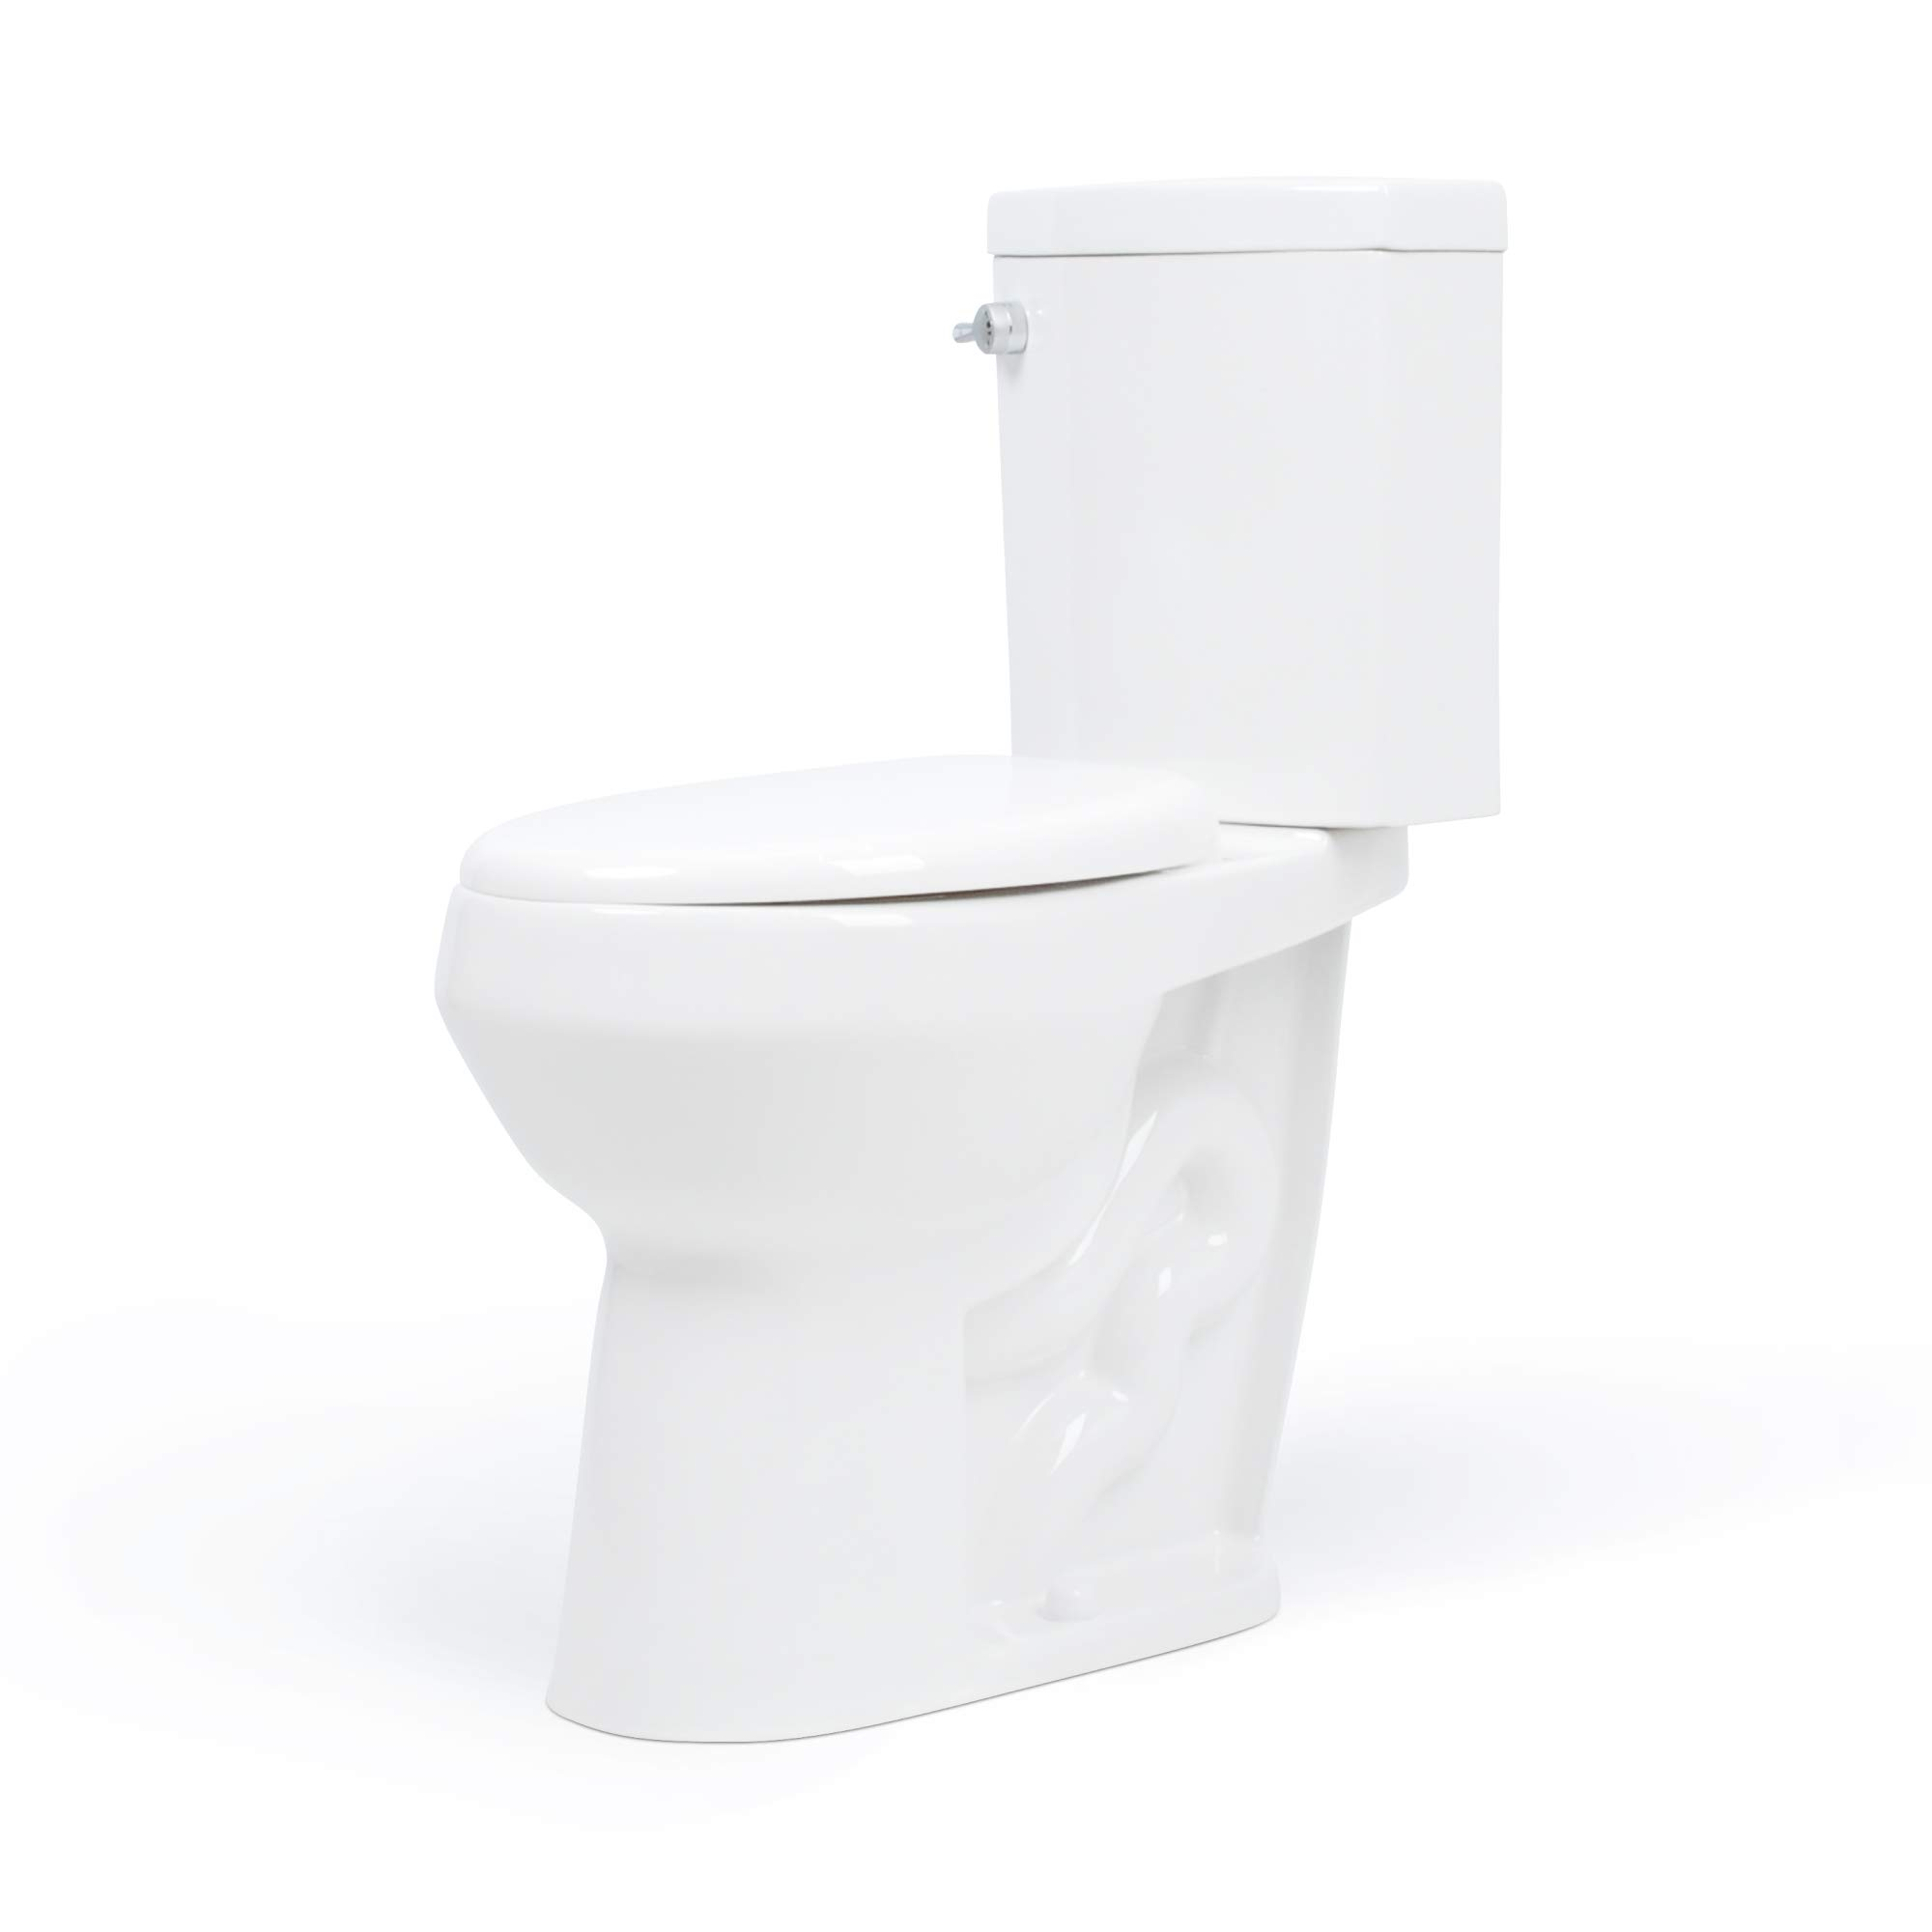 20 inch Extra Tall Toilet. Bowl Taller than ADA or Comfort Height. Elongated Slow-Close Seat. Dual Flush with New Chrome Handle